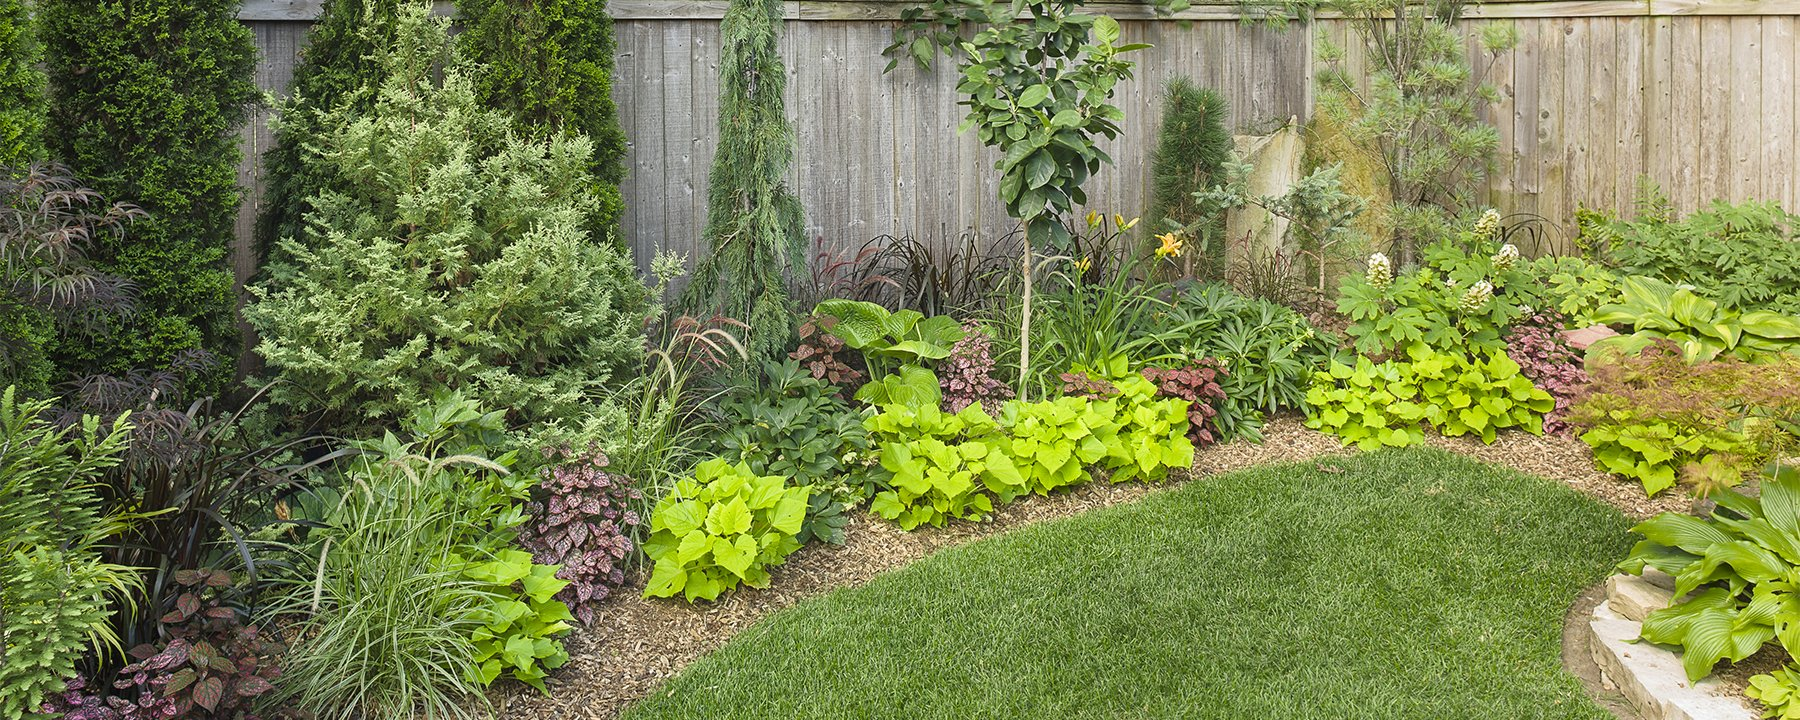 10 easy rules to a better home landscape design blog post